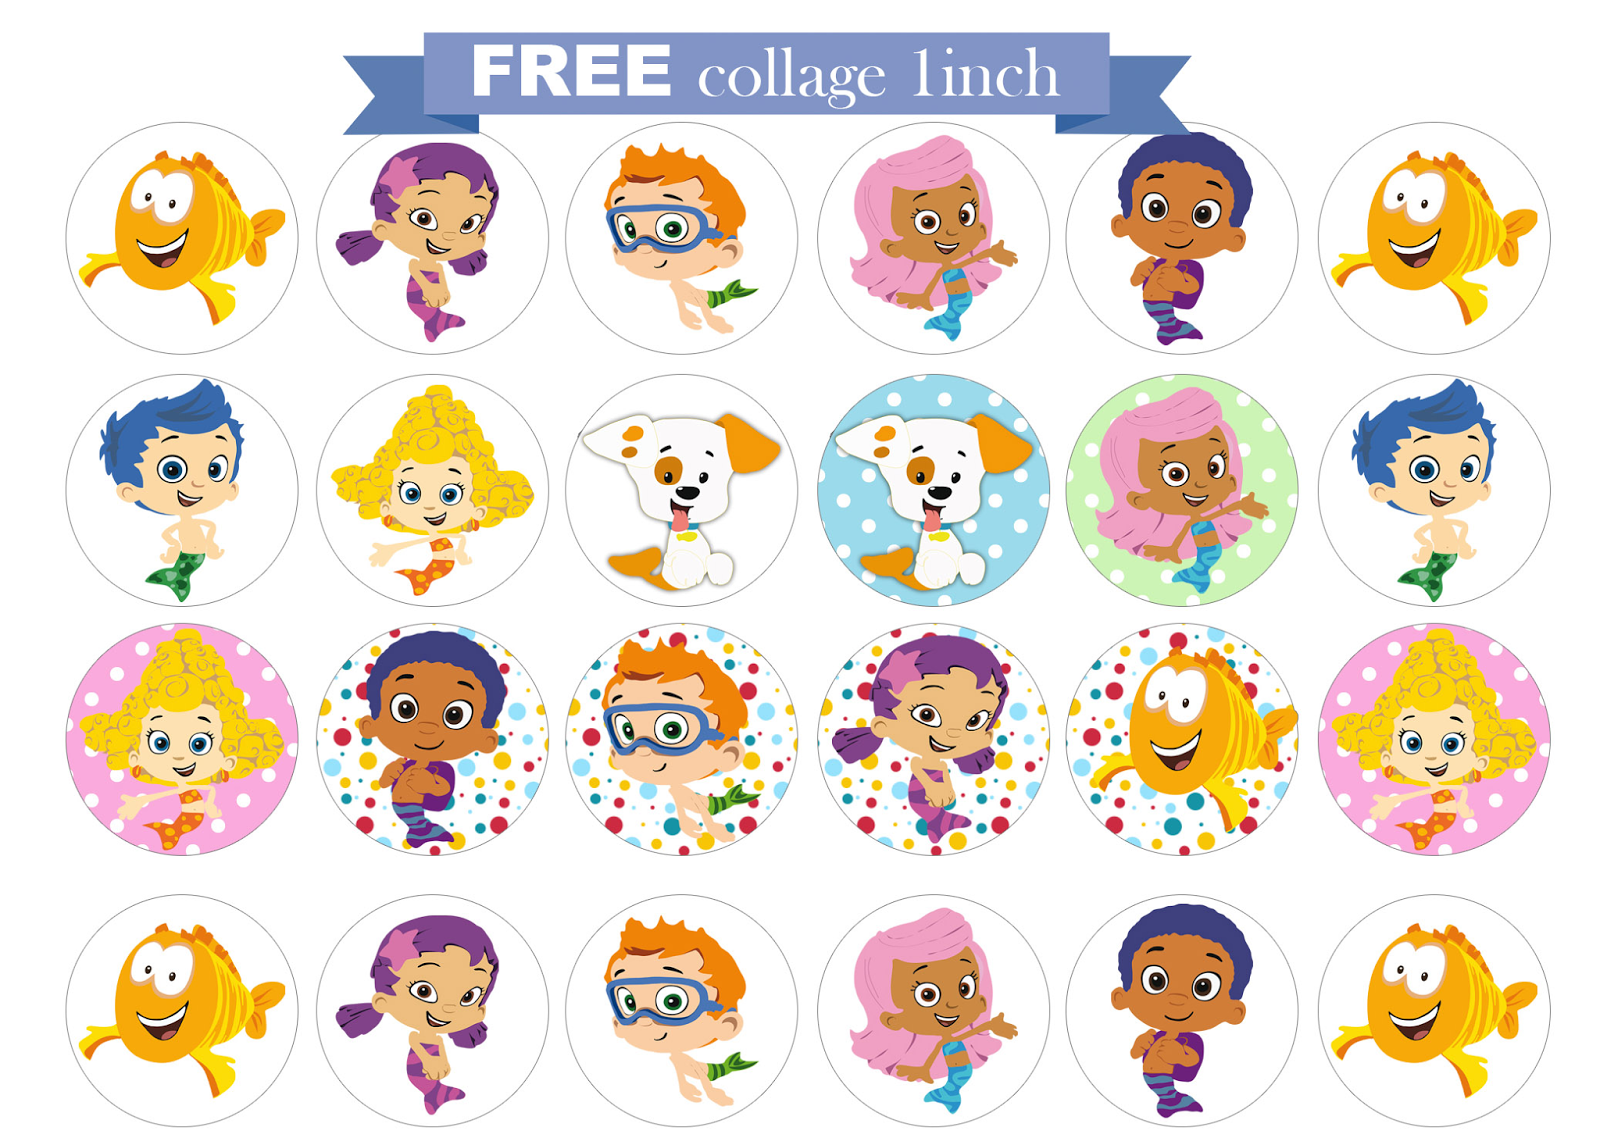 free printable invitation: Bubble Guppies FREE collage 1 inch.